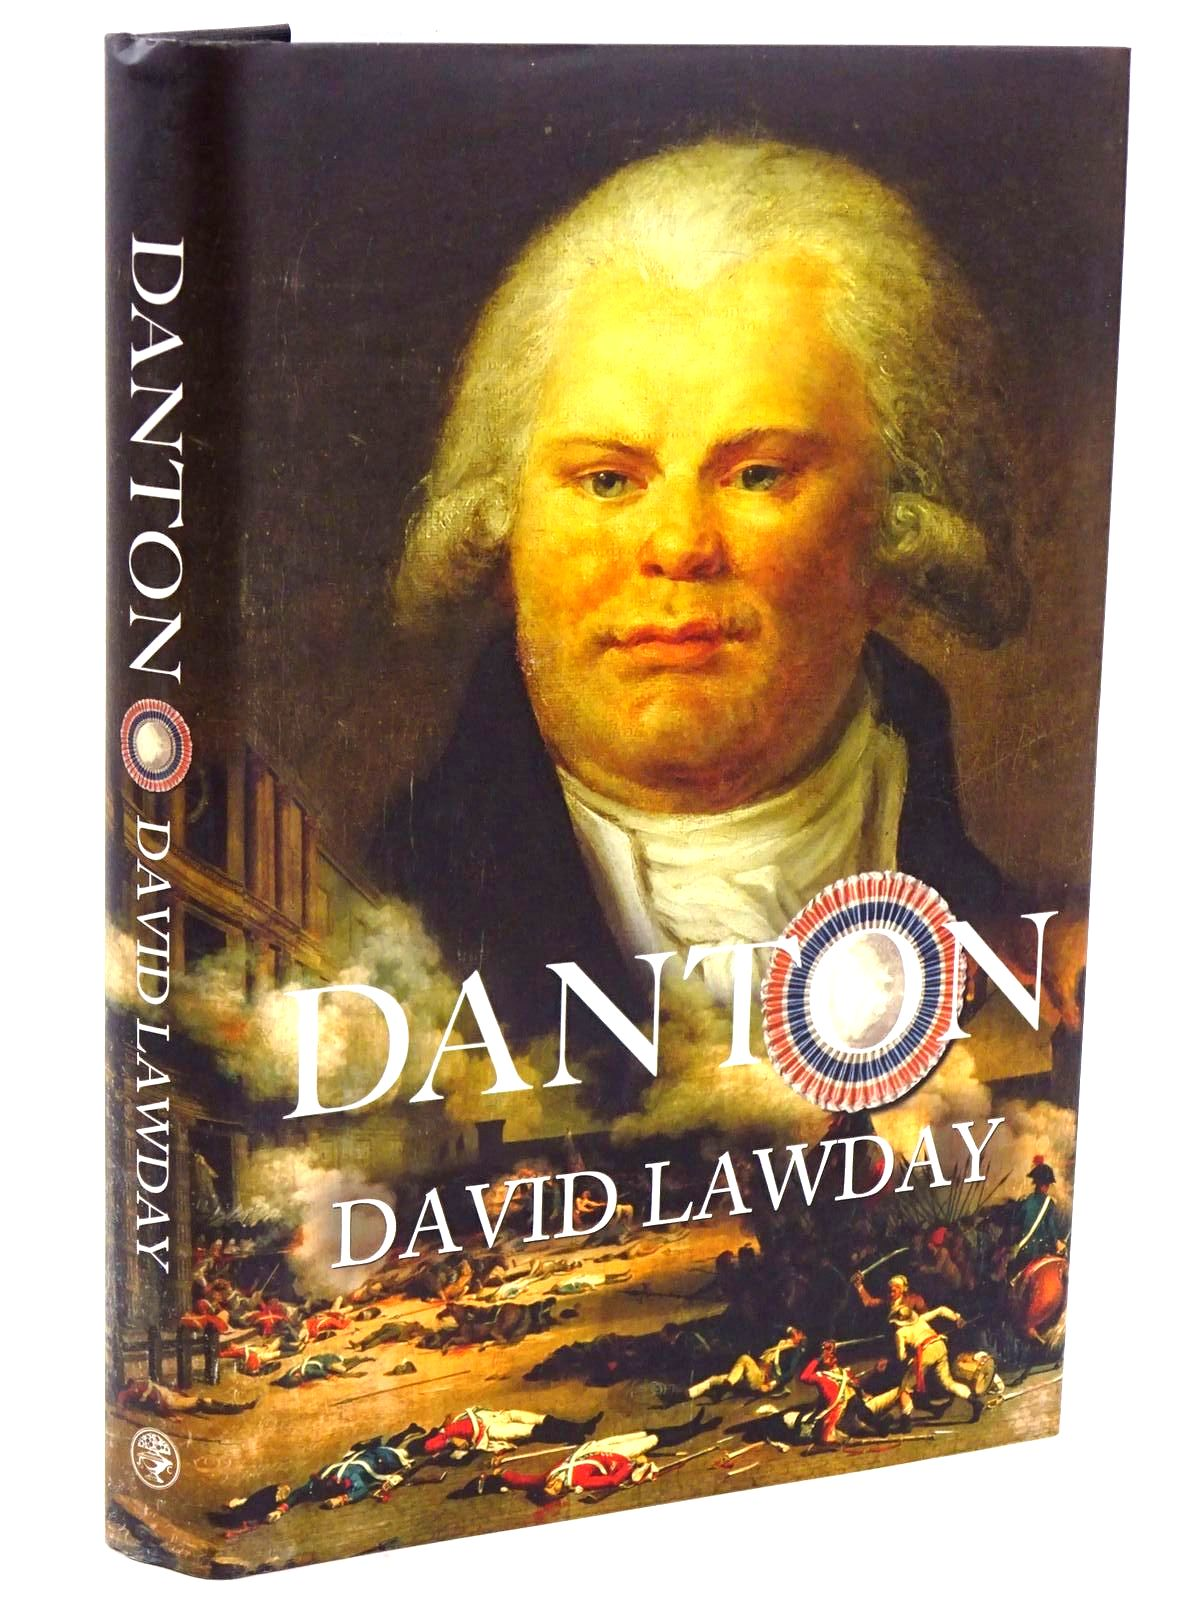 Photo of DANTON THE GENTLE GIANT OF TERROR written by Lawday, David published by Jonathan Cape (STOCK CODE: 1318398)  for sale by Stella & Rose's Books